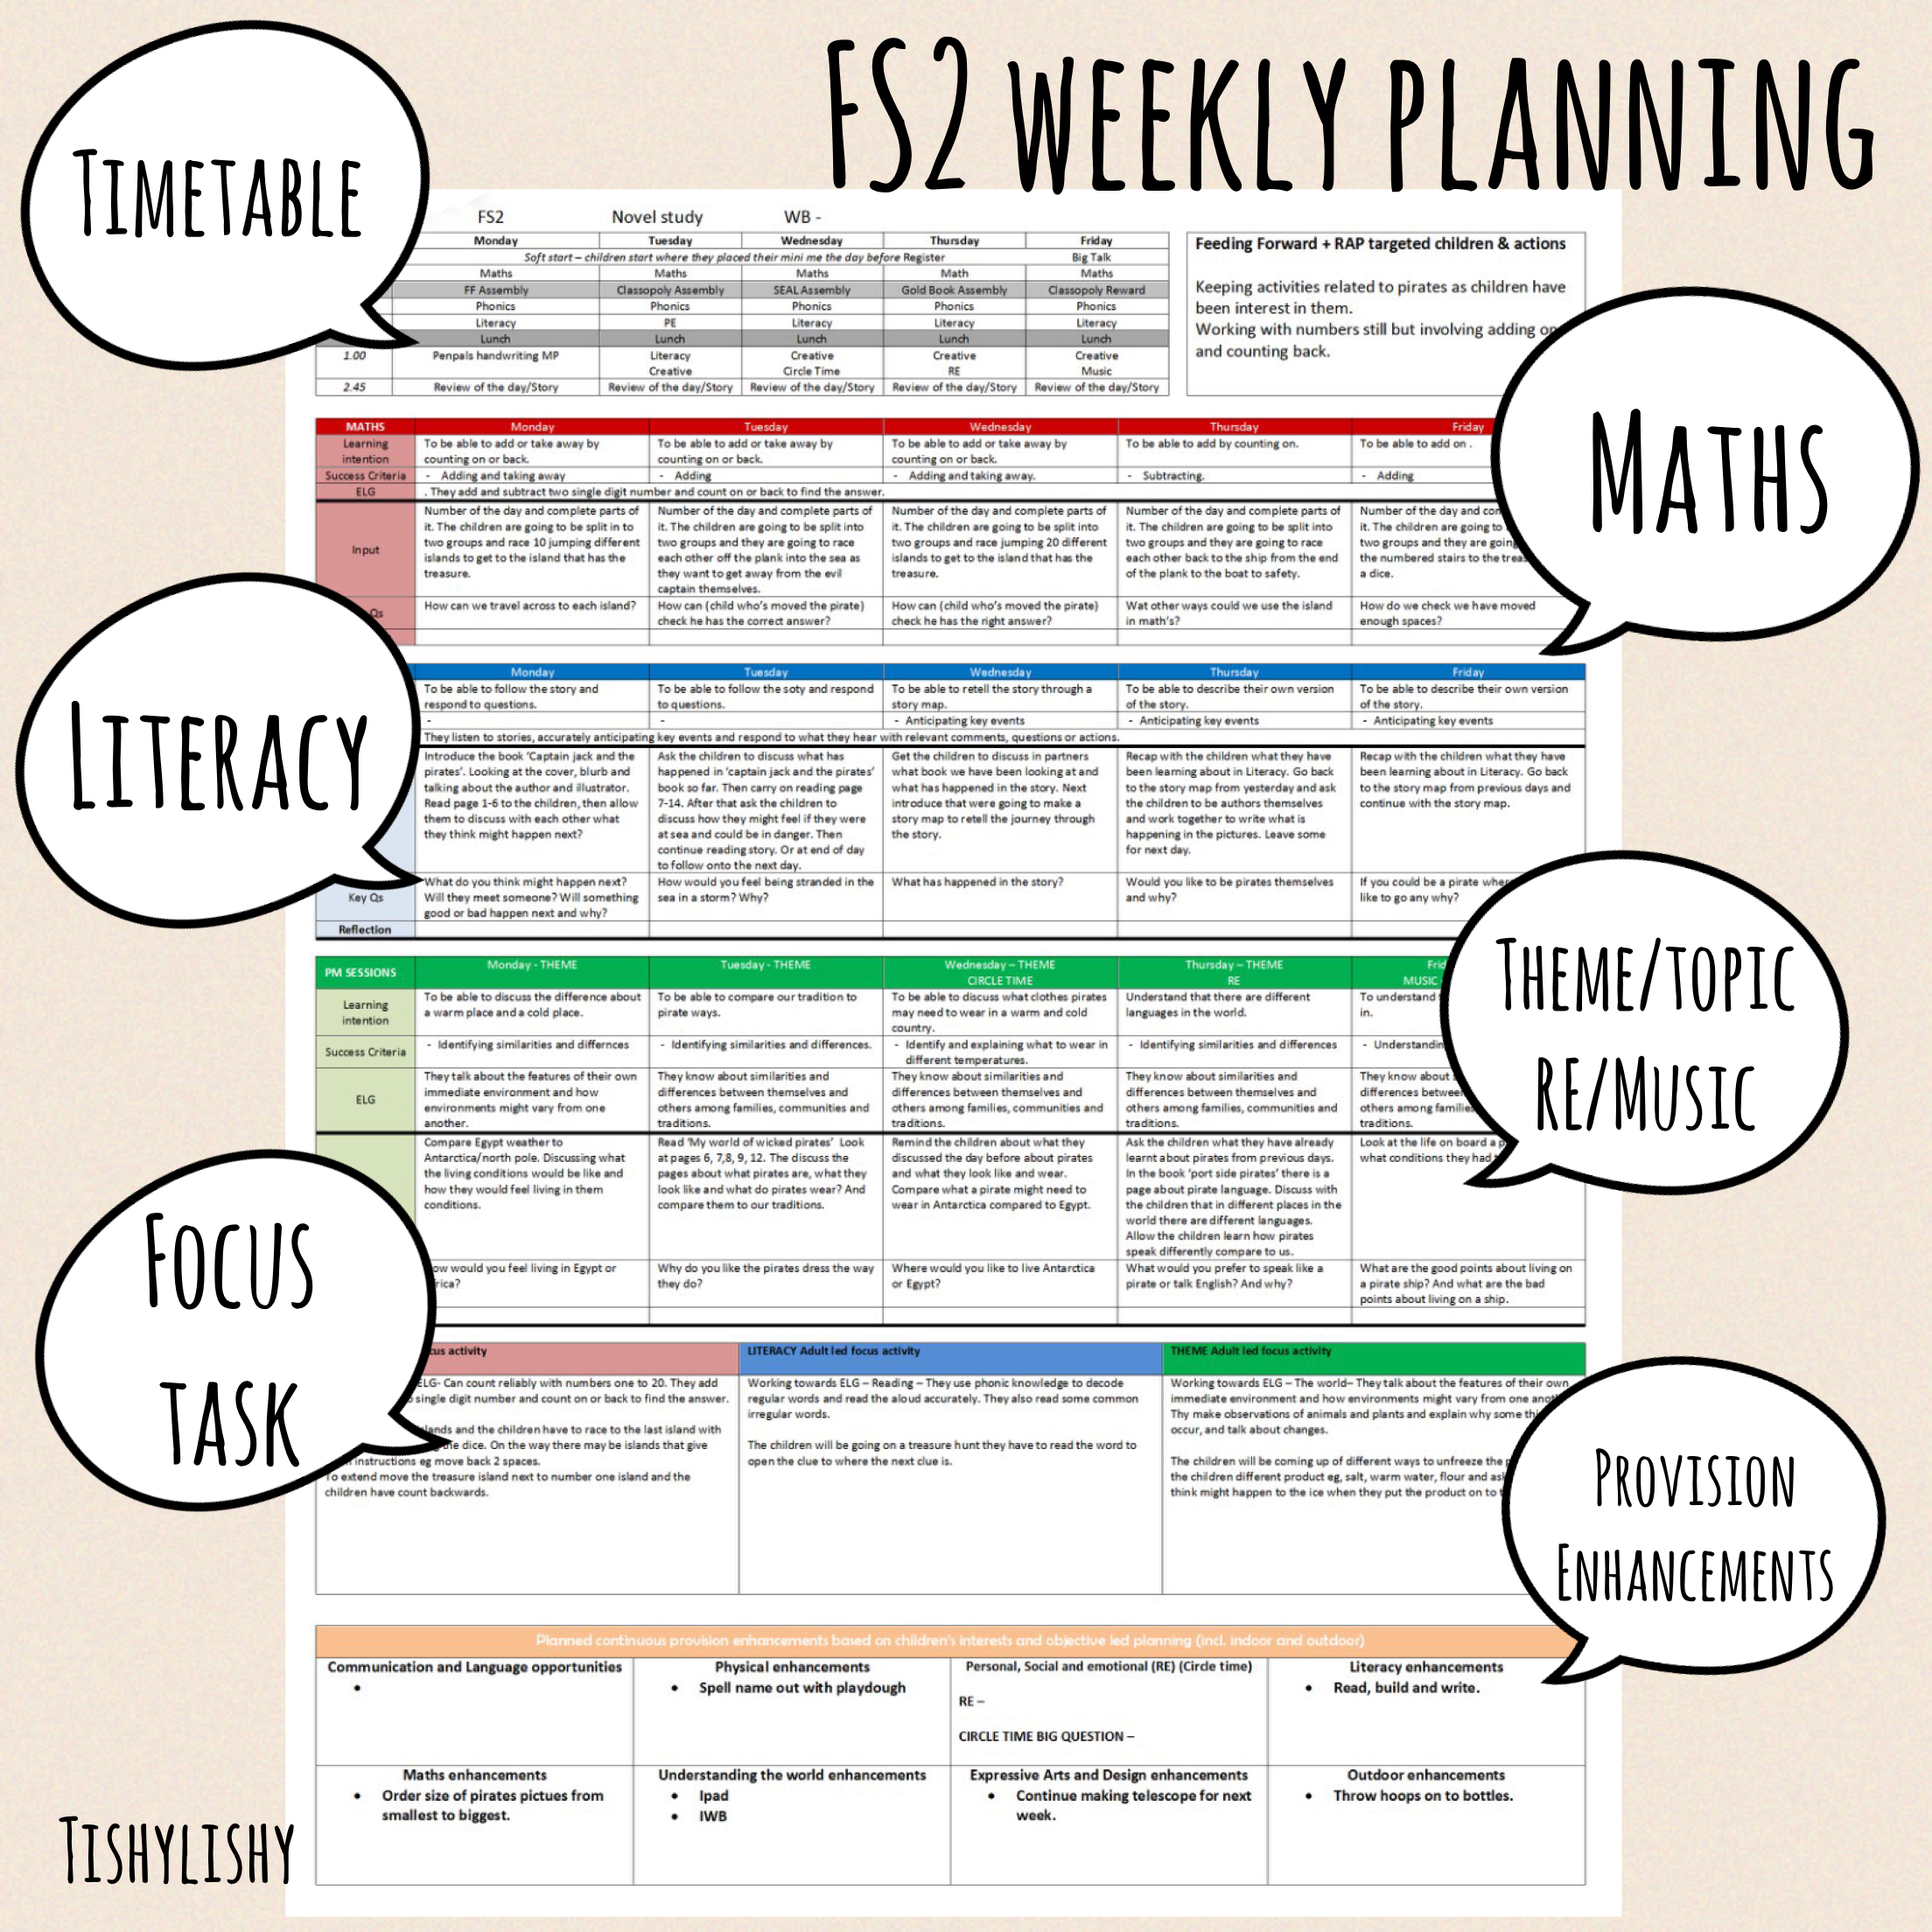 20 Planning ideas   eyfs, early years foundation stage, how to plan